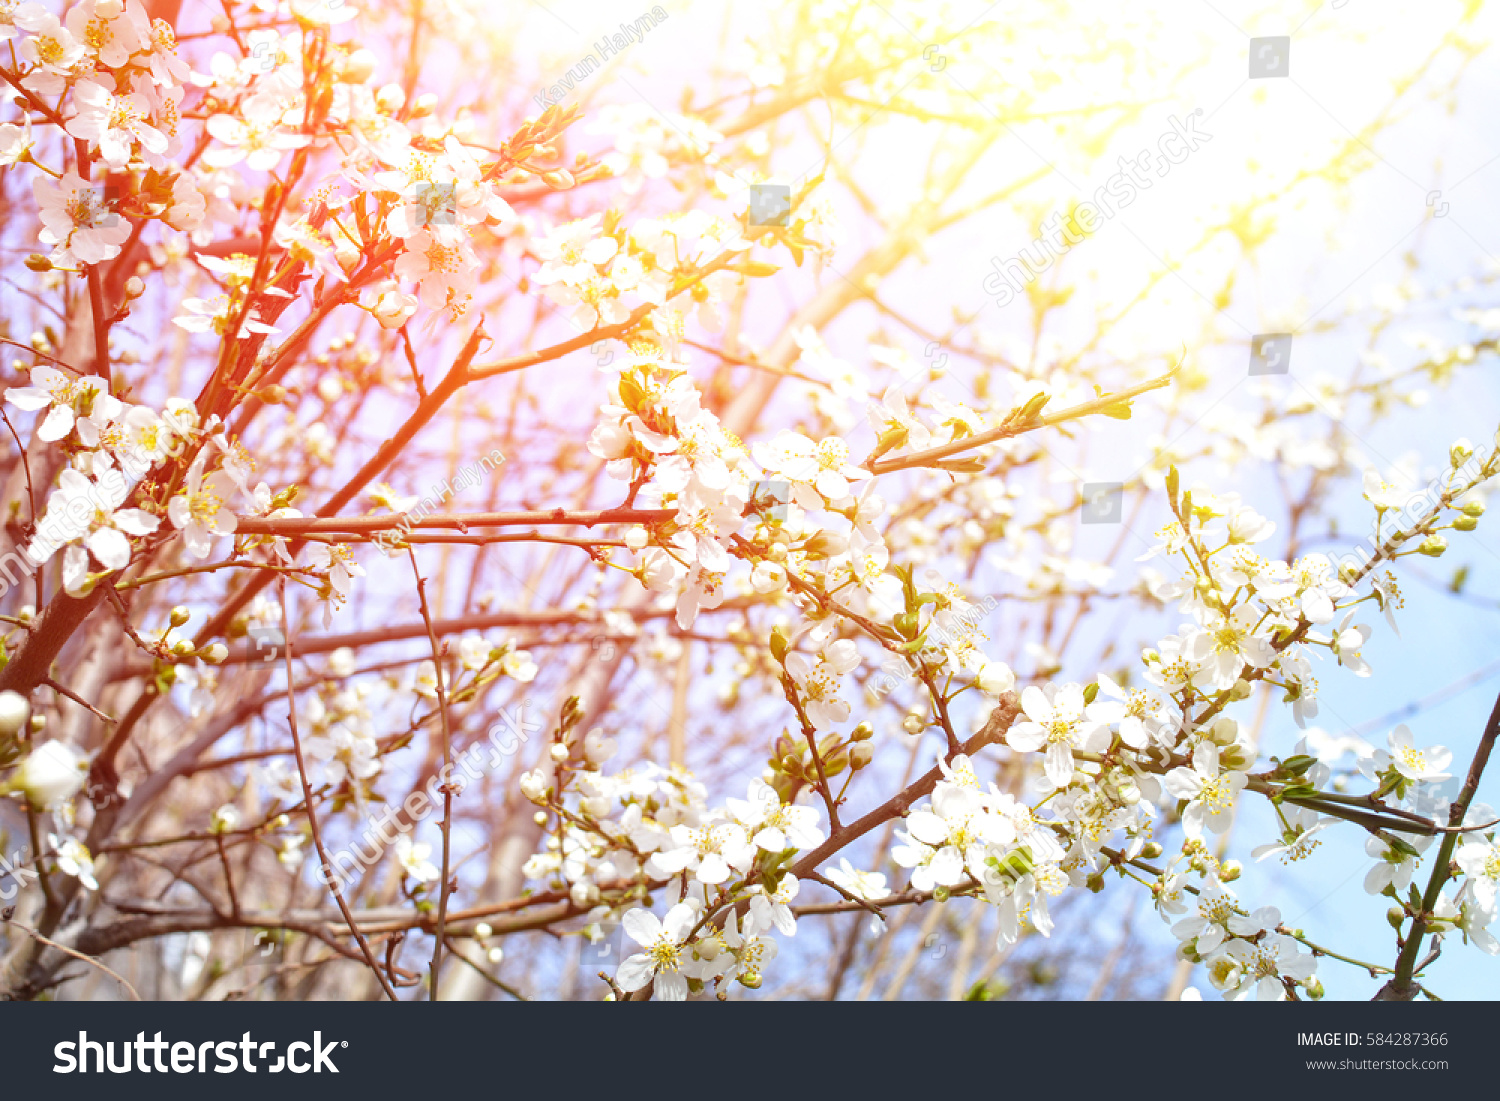 Apple Tree Spring Blooms In Soft Background Of Branches And Sky